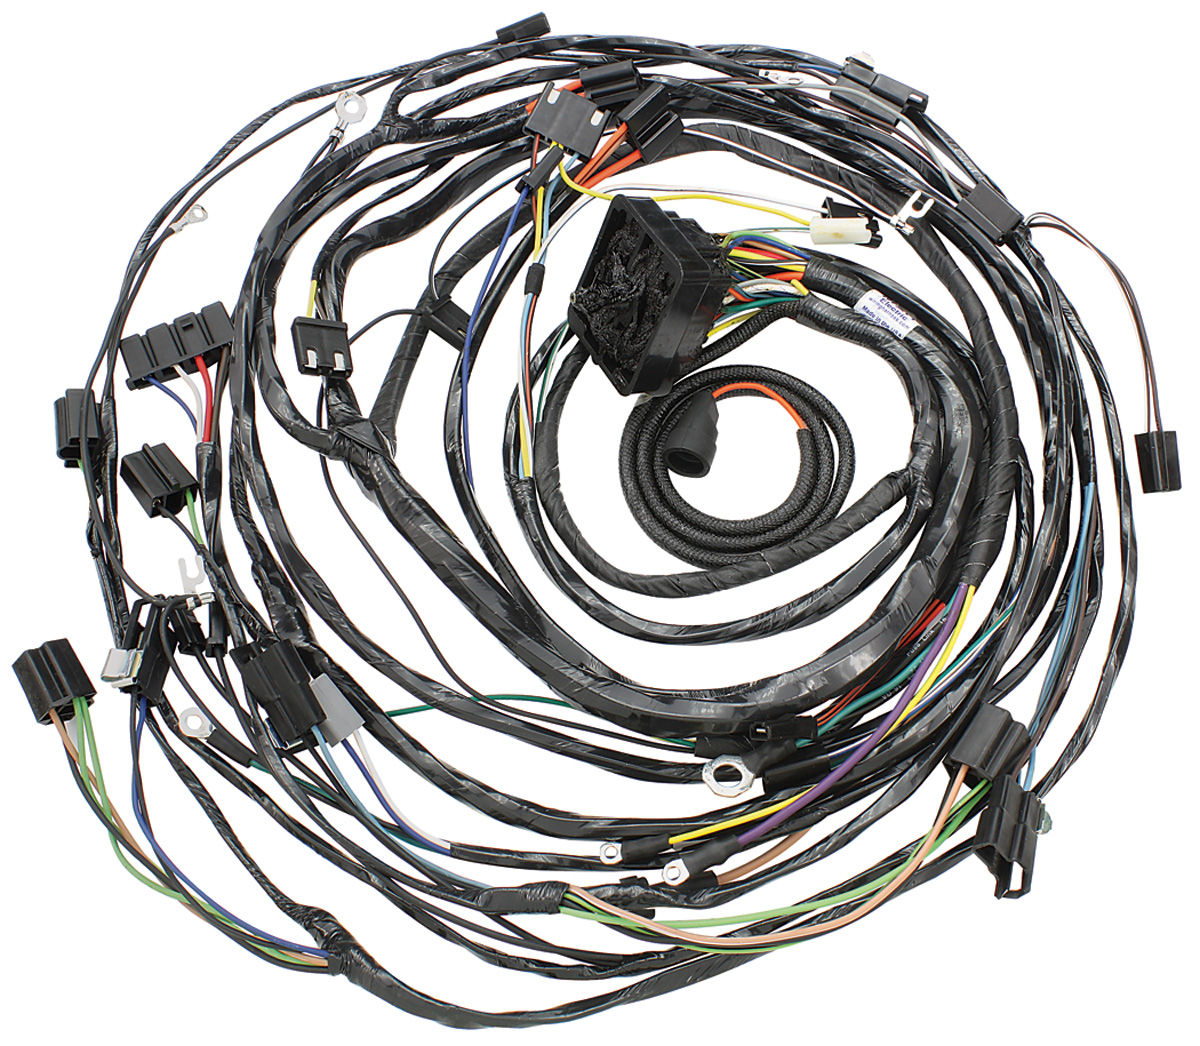 hight resolution of 1962 cadillac distributor wiring